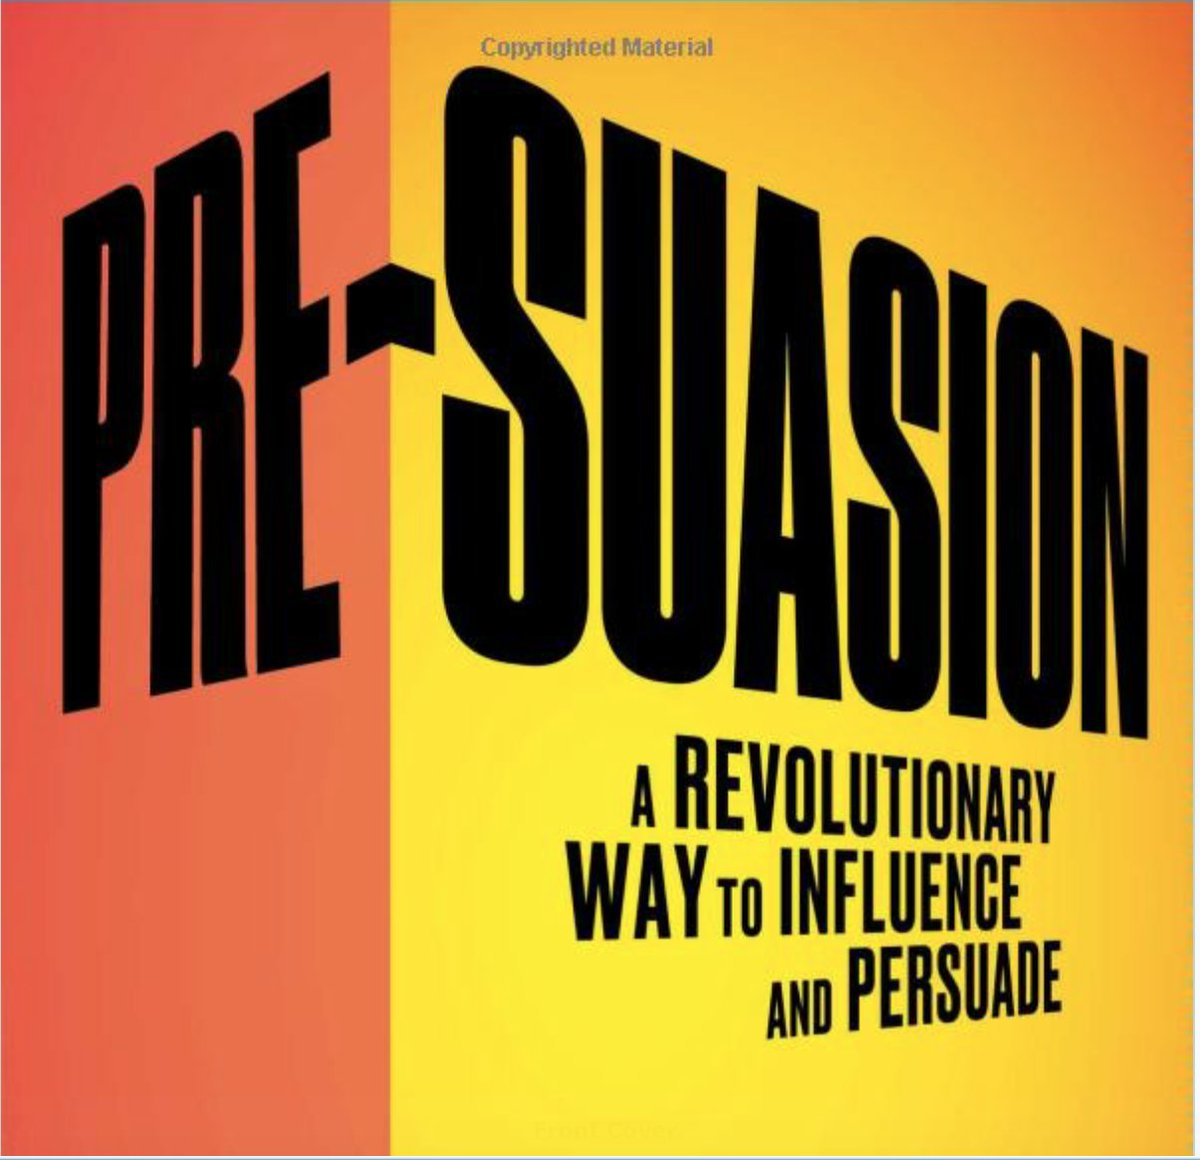 Prepare people to be persuaded, says Robert Cialdini.  http:// bit.ly/2g6CdNy  &nbsp;   #speakingtips #persuasion<br>http://pic.twitter.com/bbzYYMfXka